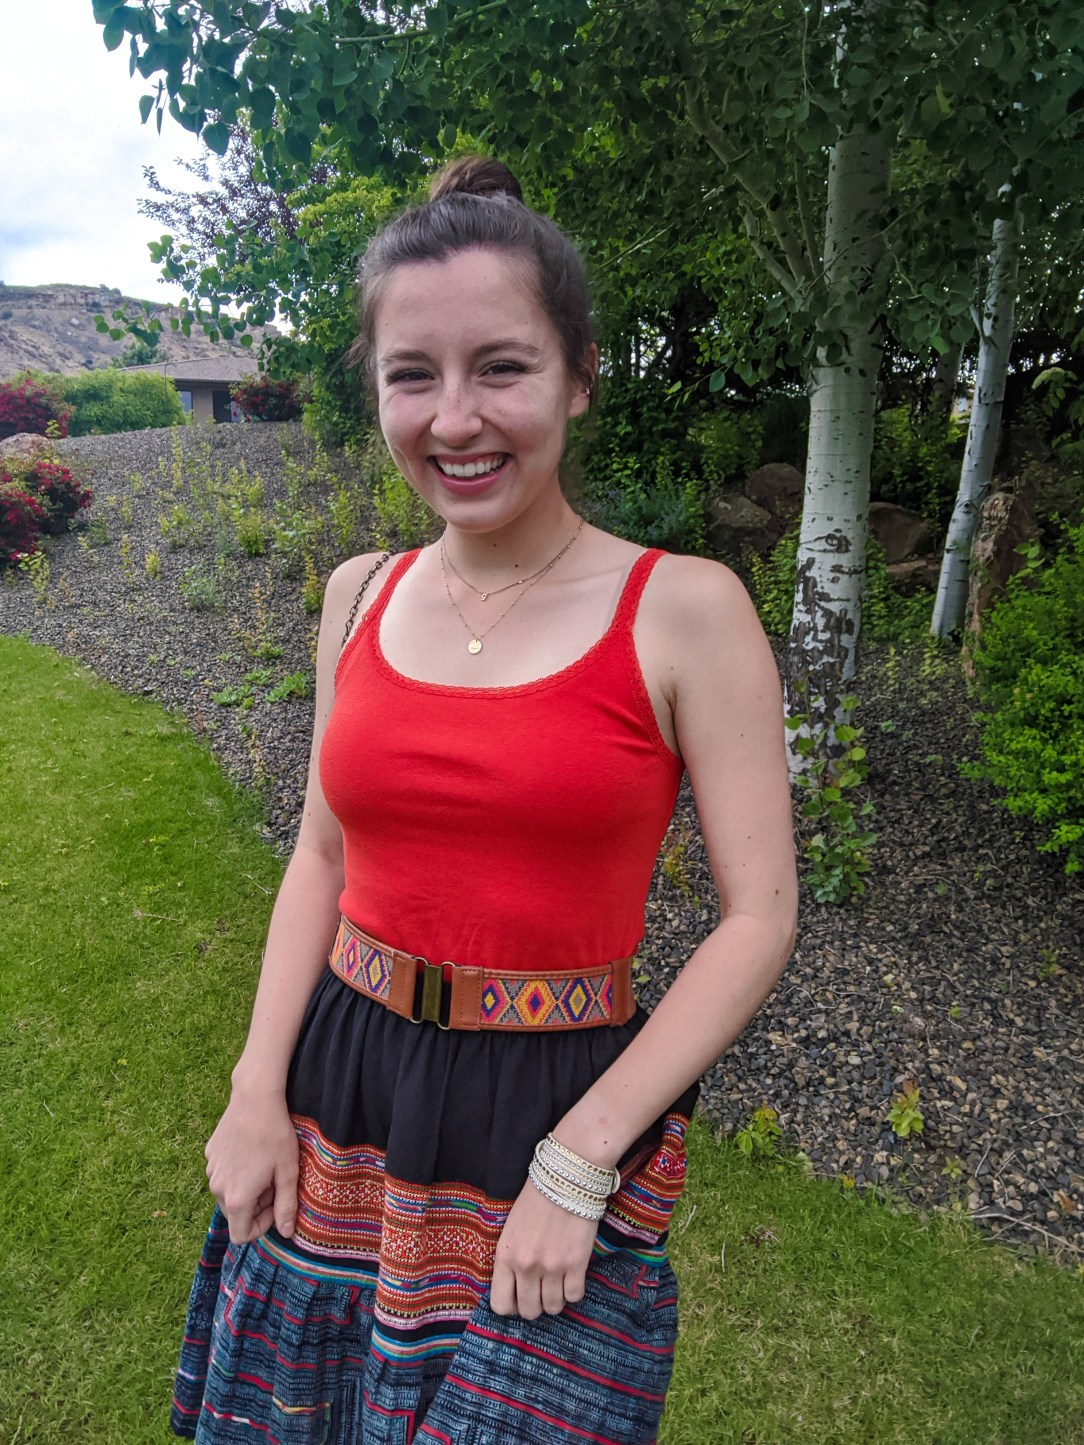 college-student-college-fashion-blogger-patterned-skirt-summer-outfit